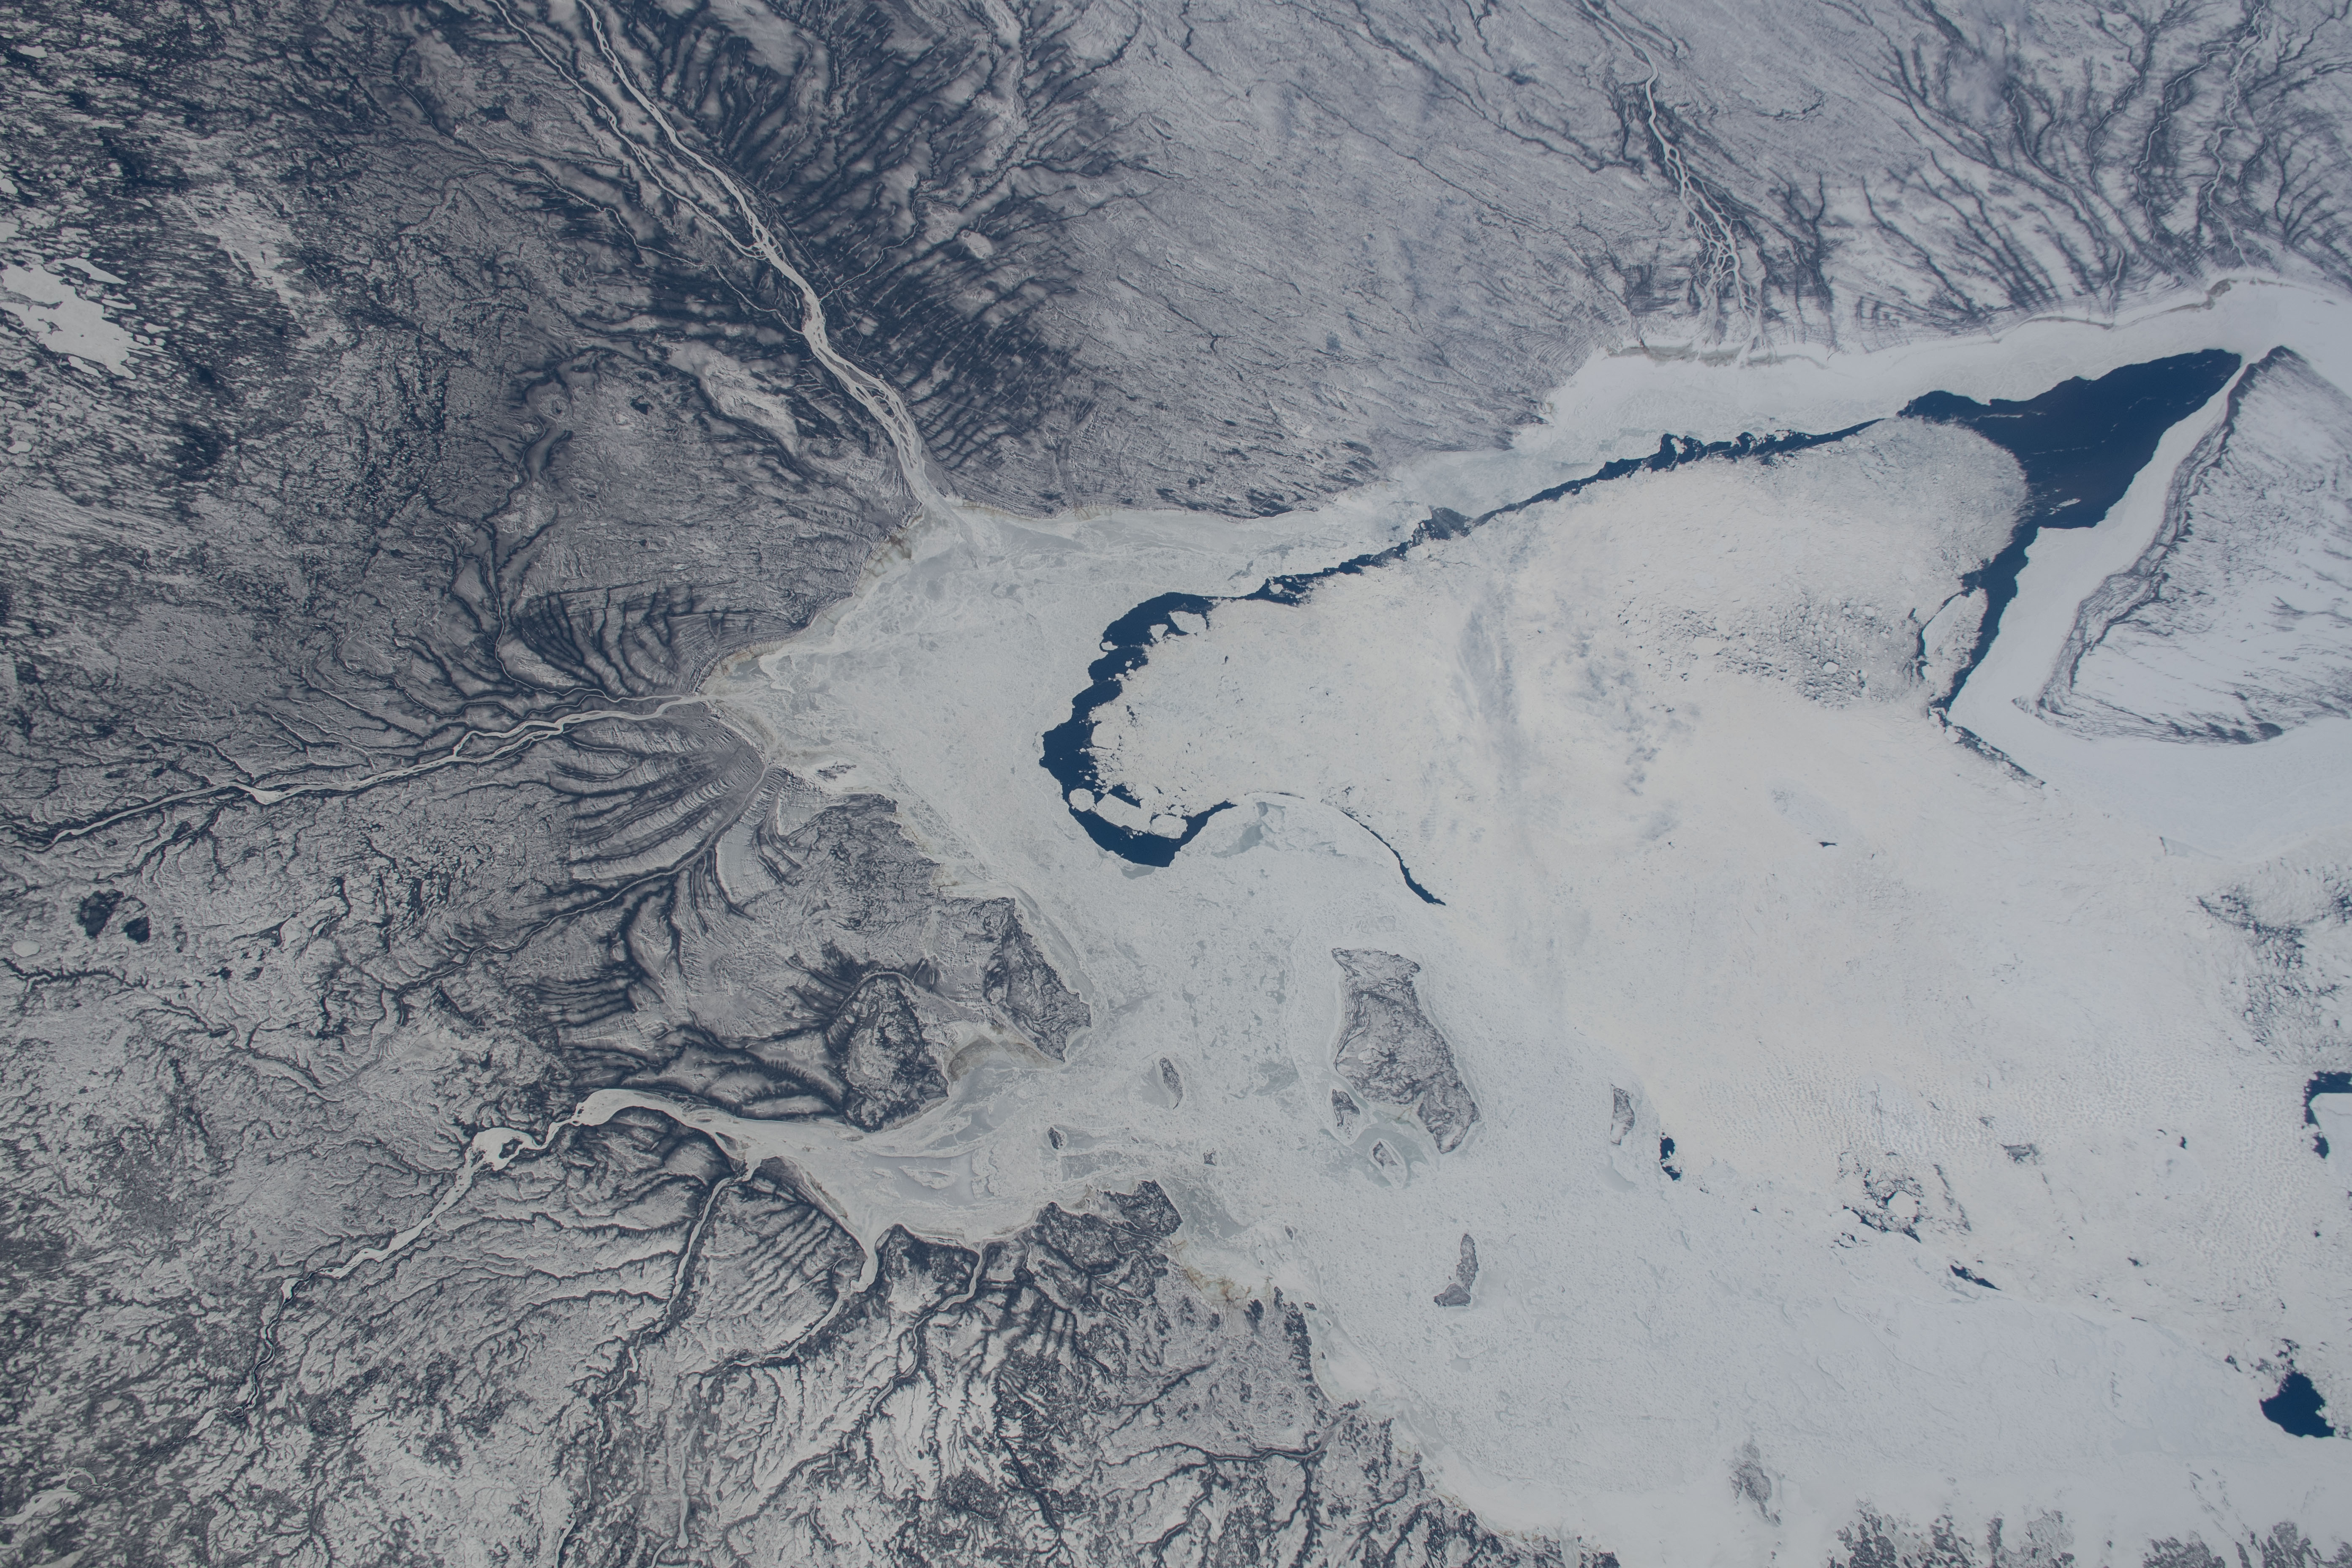 Station Crew Views the Frozen Southern Tip of Hudson Bay